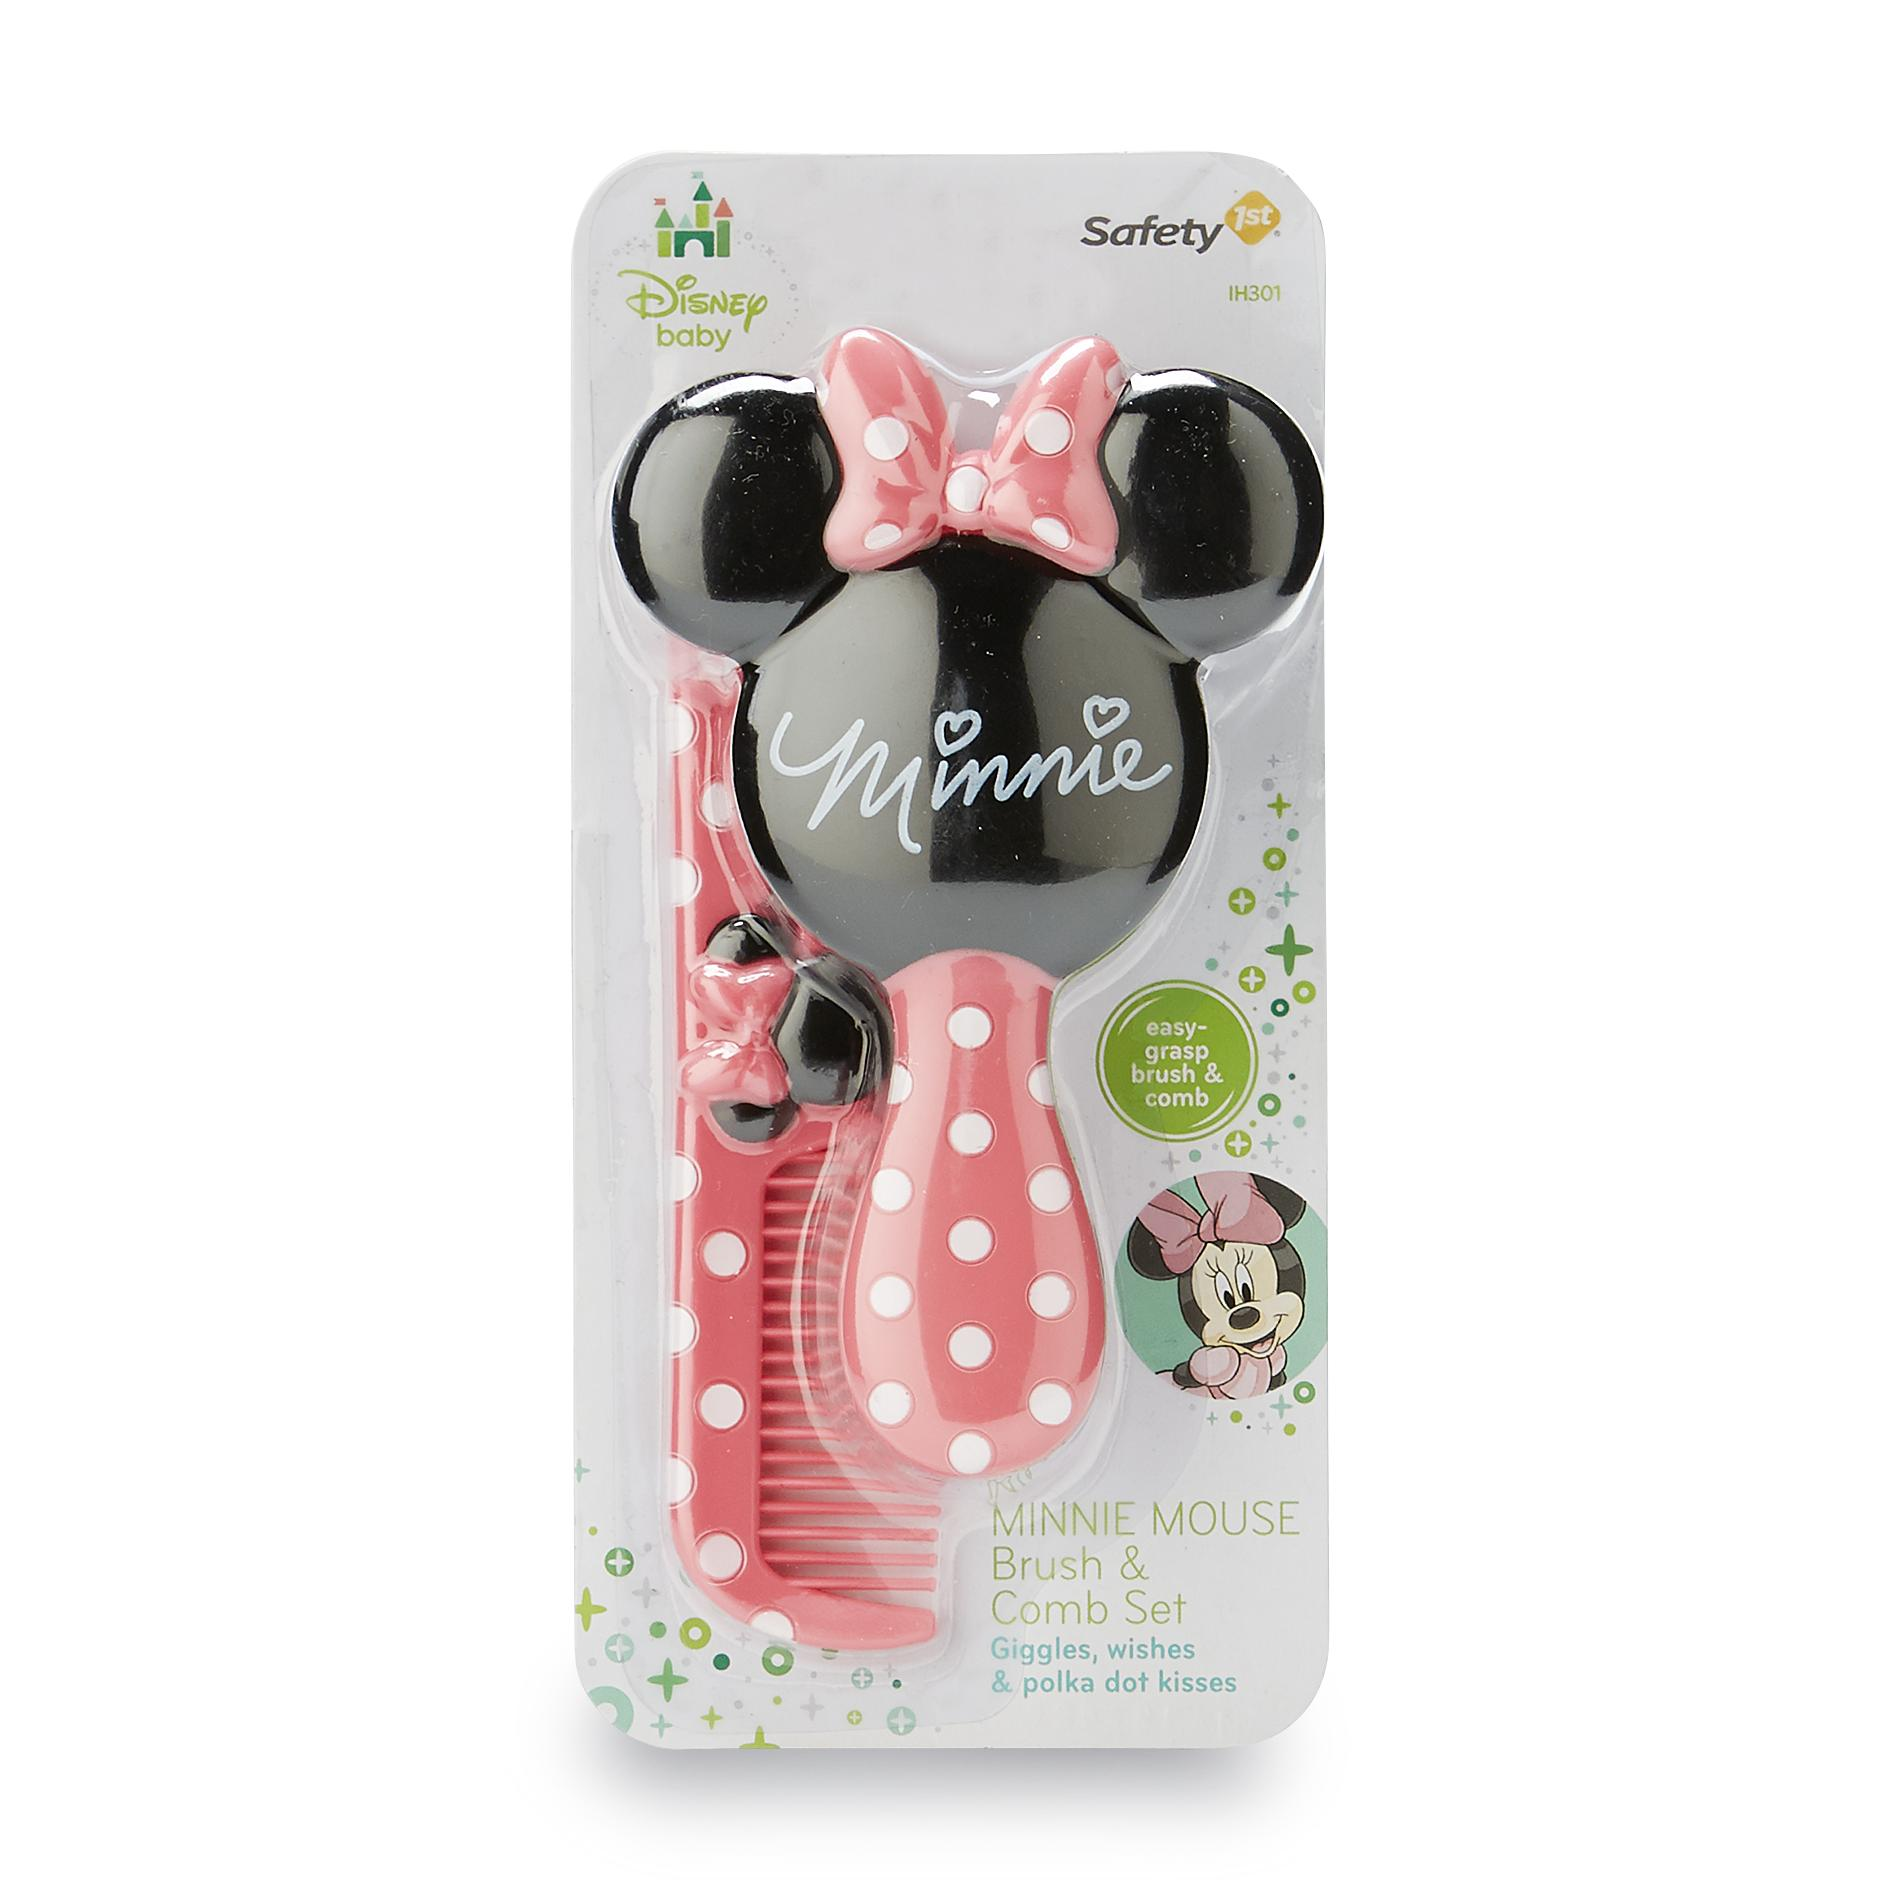 Safety 1st Minnie Mouse Brush & Comb Set